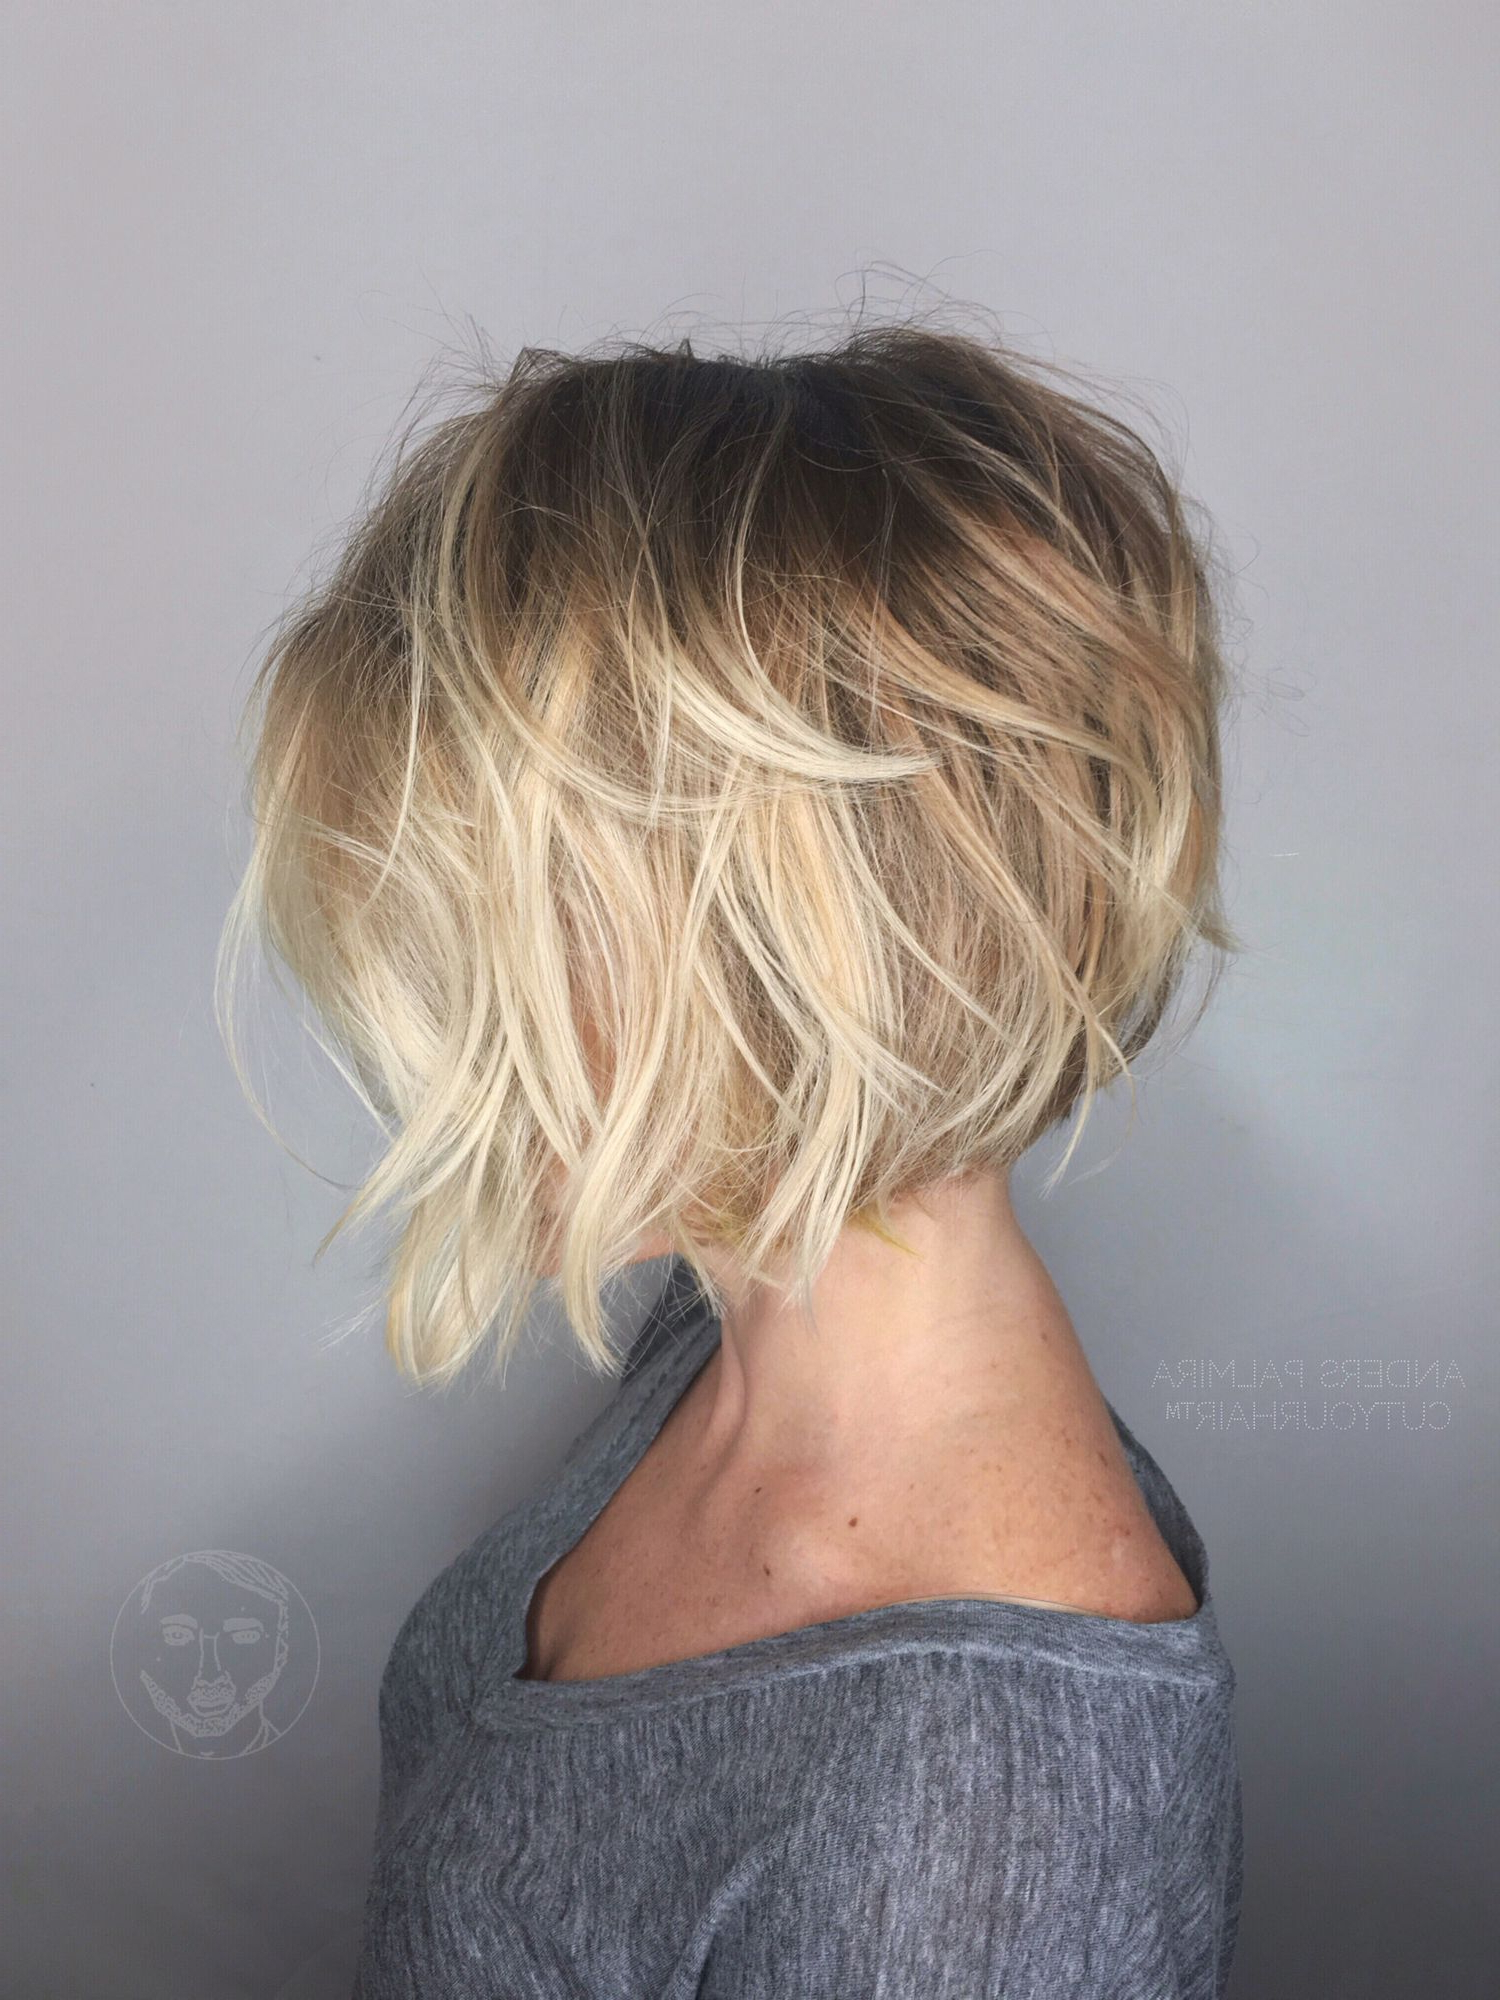 Aveda Wavy Long Blonde Bob Short Hair Beach Wave Medium Ideas Lob For Nape Length Blonde Curly Bob Hairstyles (Gallery 1 of 20)